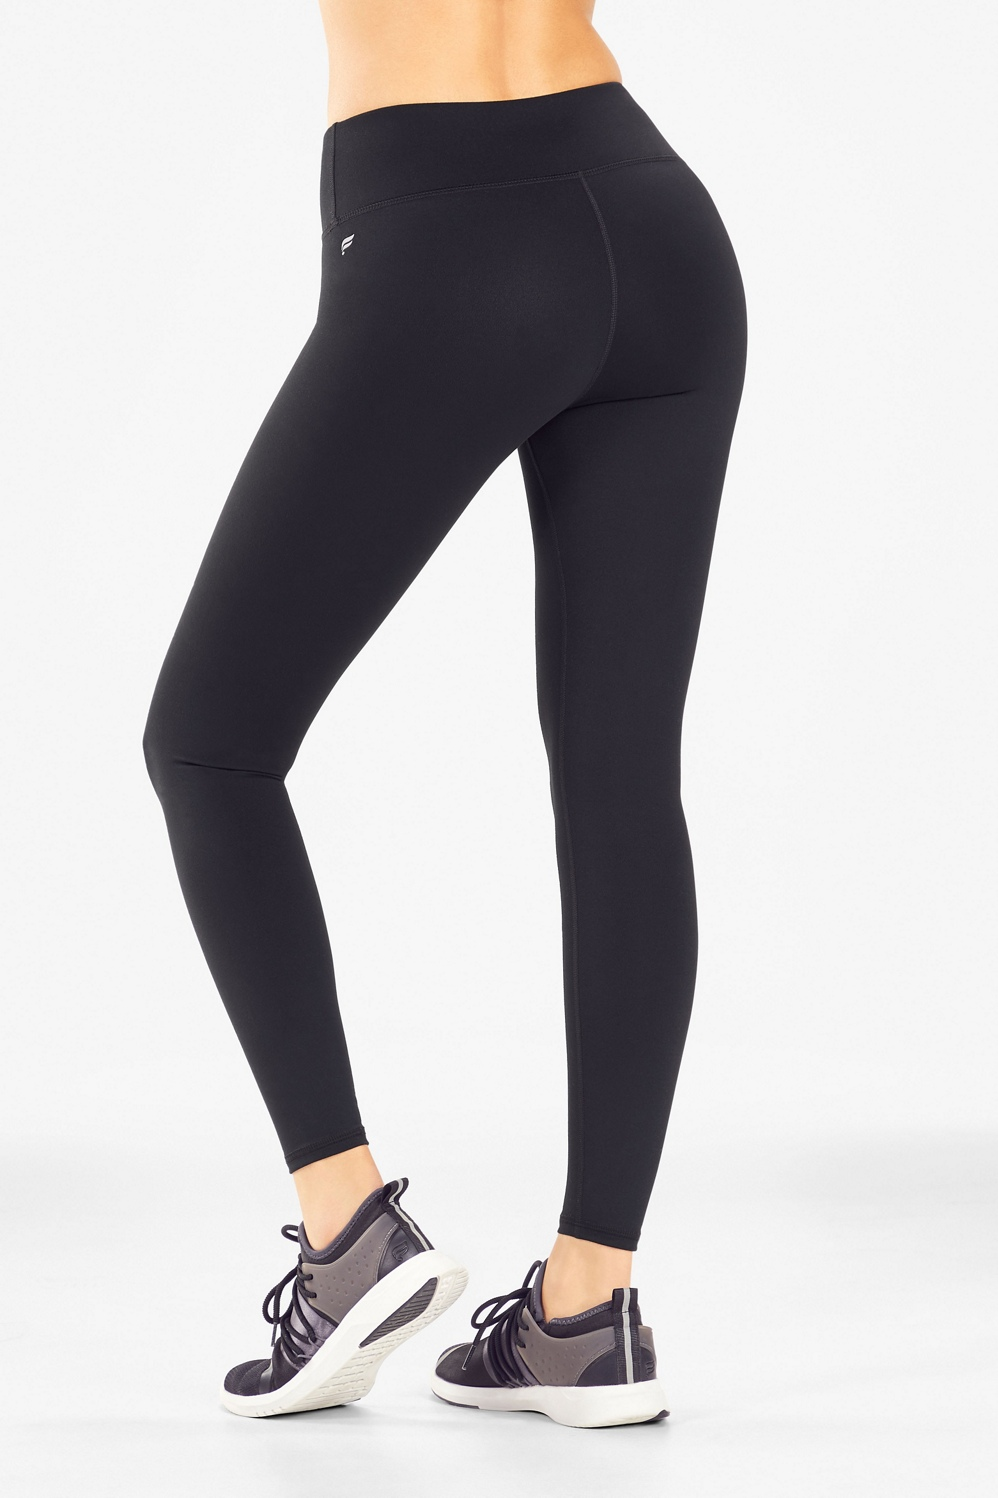 Today's best tight leggings offers: Find the best tight leggings coupons and deals from the most popular Women's Leggings stores for discounts. report2day.ml provides exclusive offers from top brands on mens training leggings, tights leggings faux and so on.